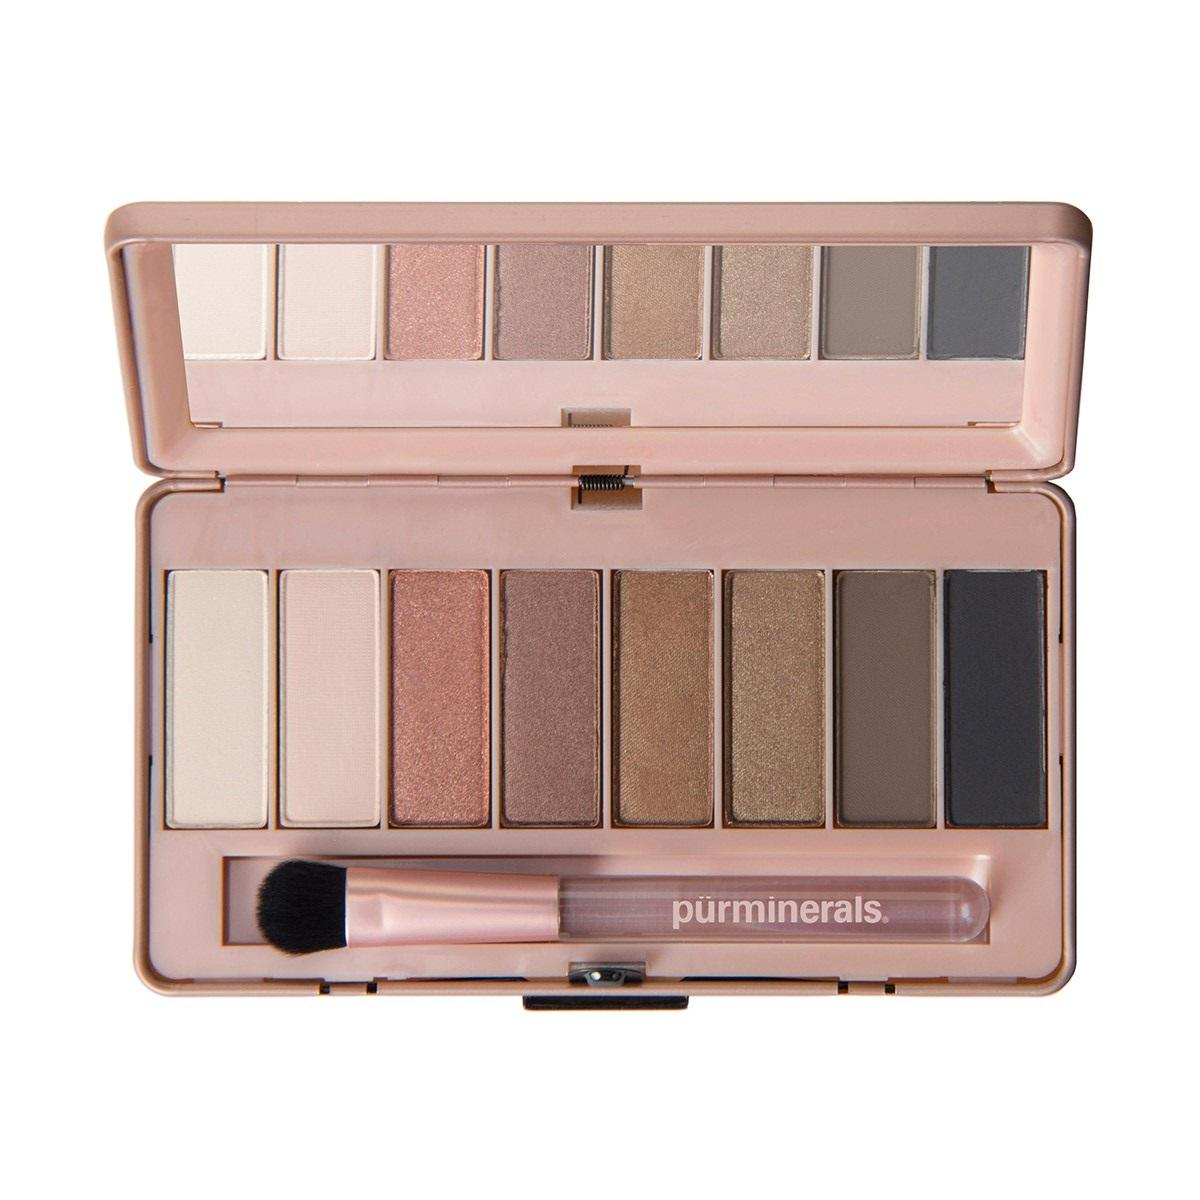 pur Cosmetics 'Secret Crush' eye shadow palette